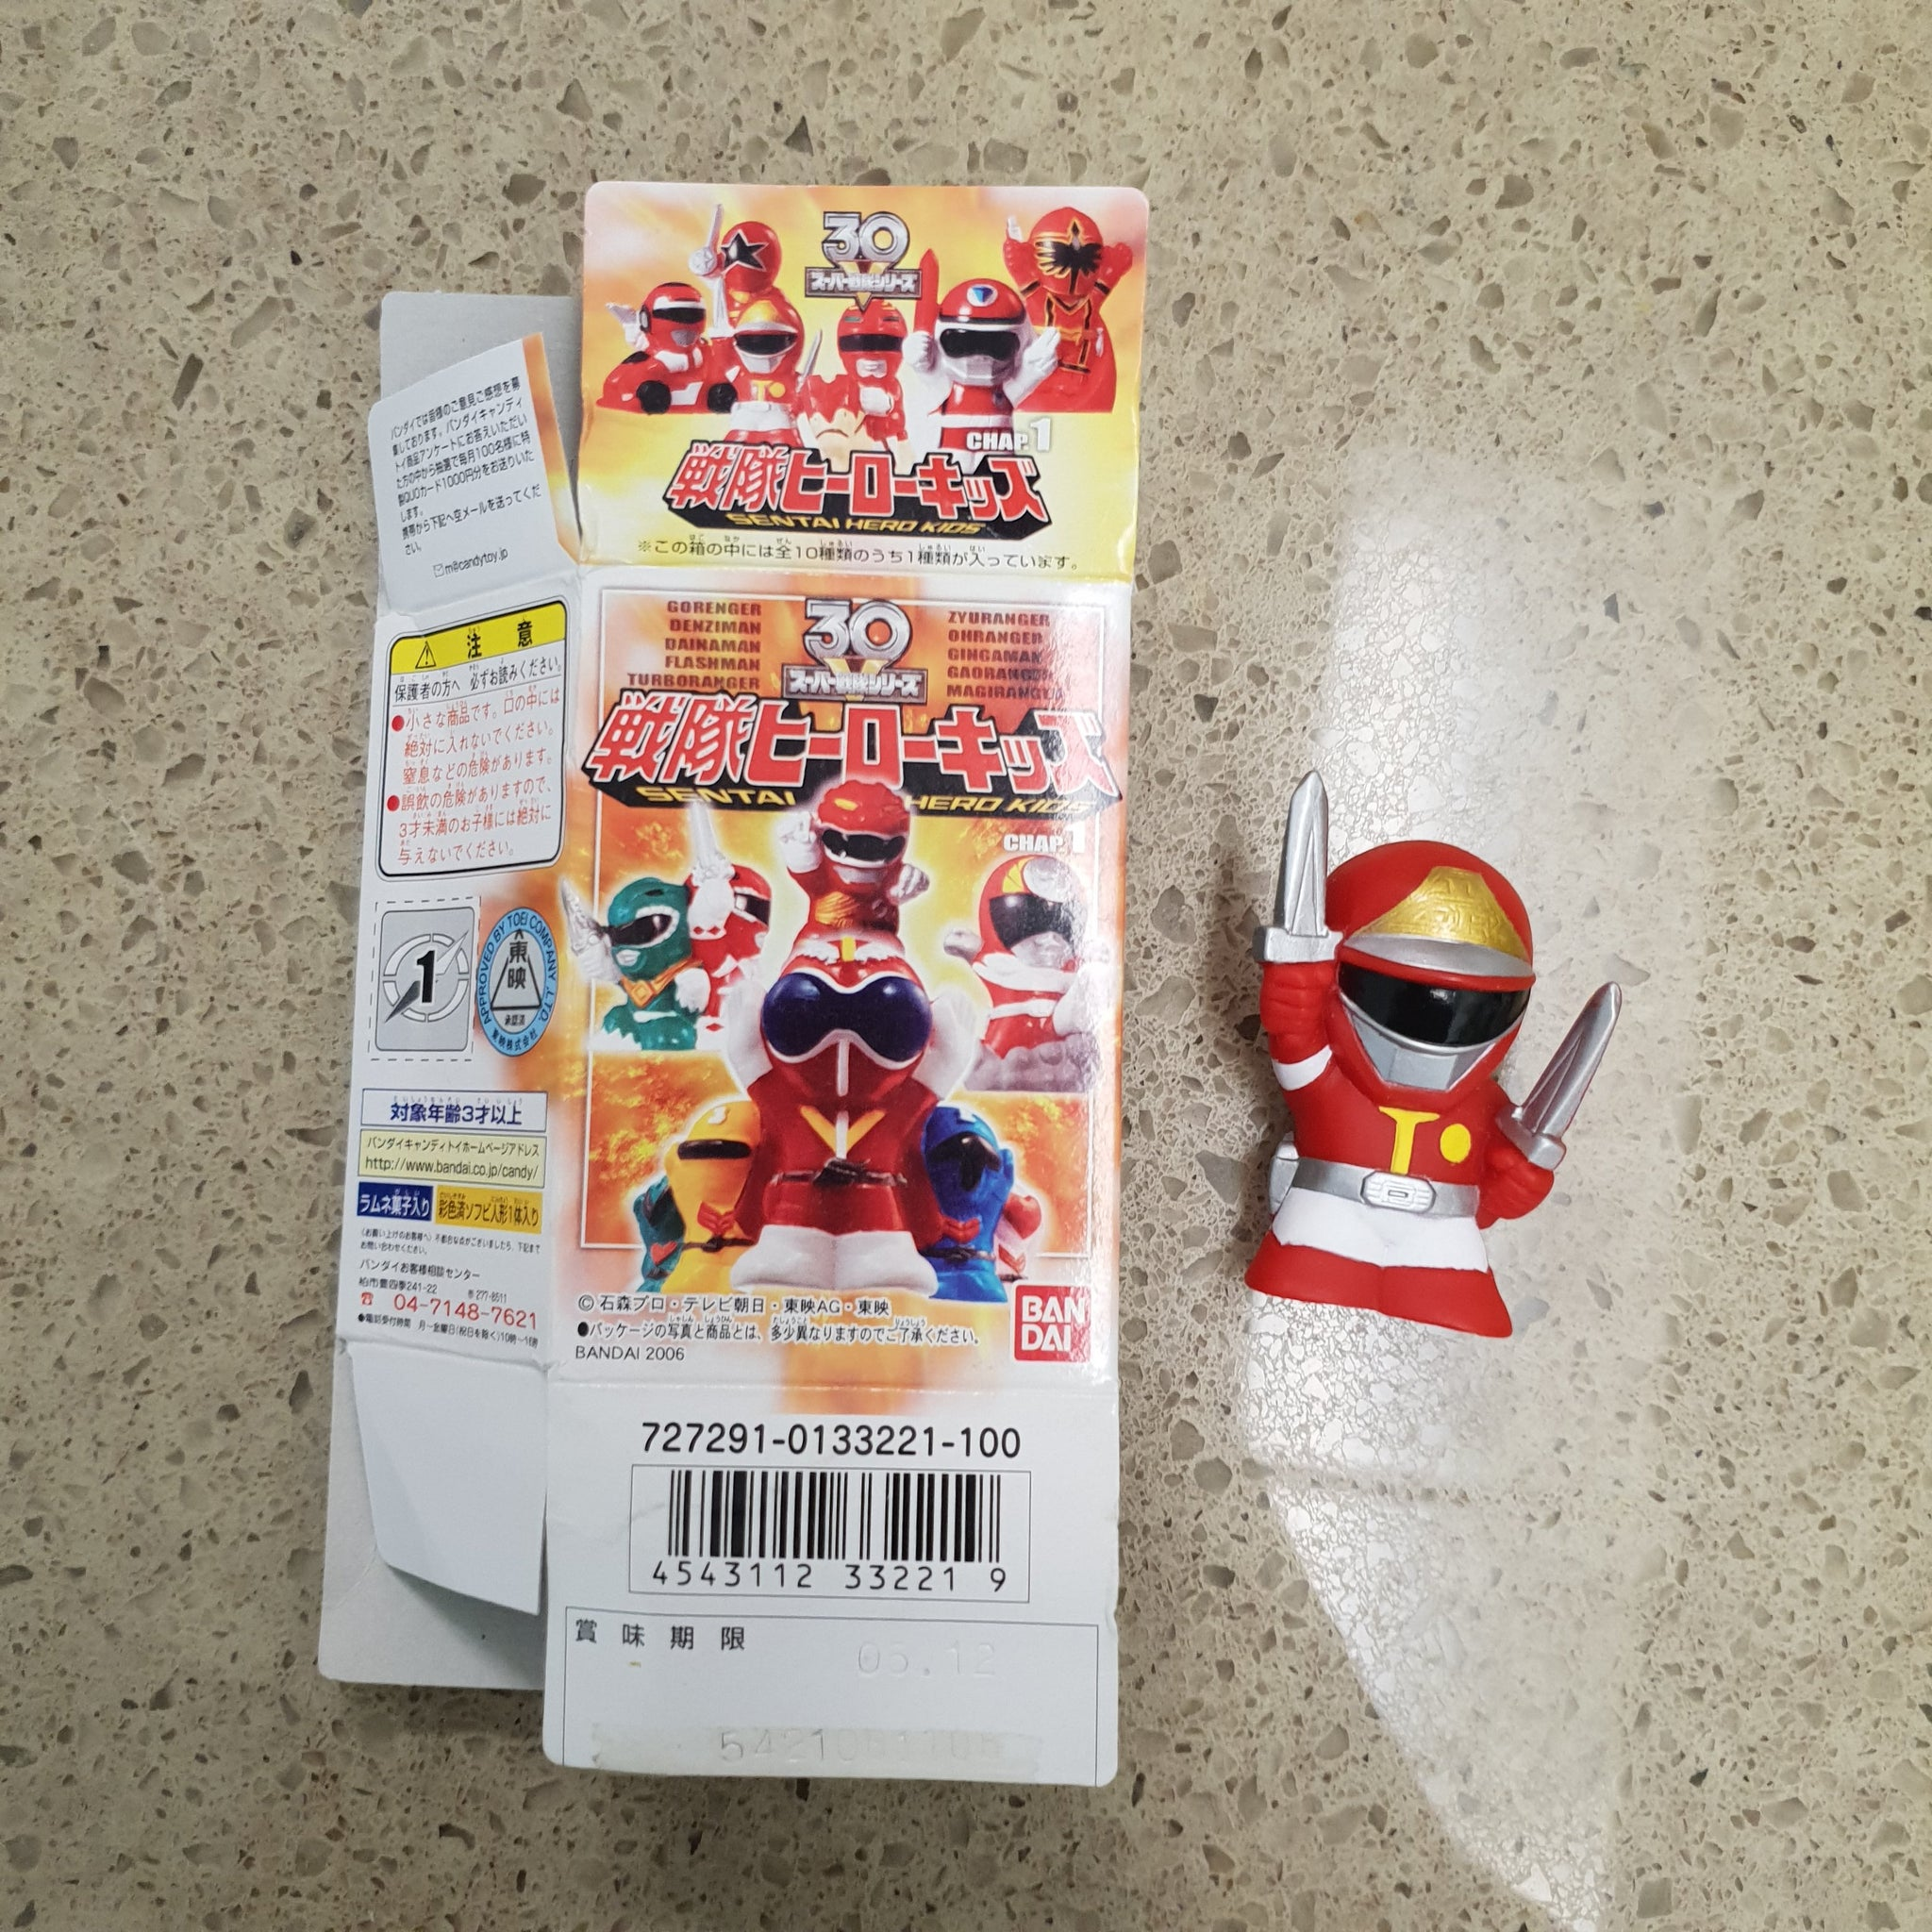 Sentai Hero Kids (Power Rangers) Candy Toy (2006) / Finger Puppet - #3 - FING01292019